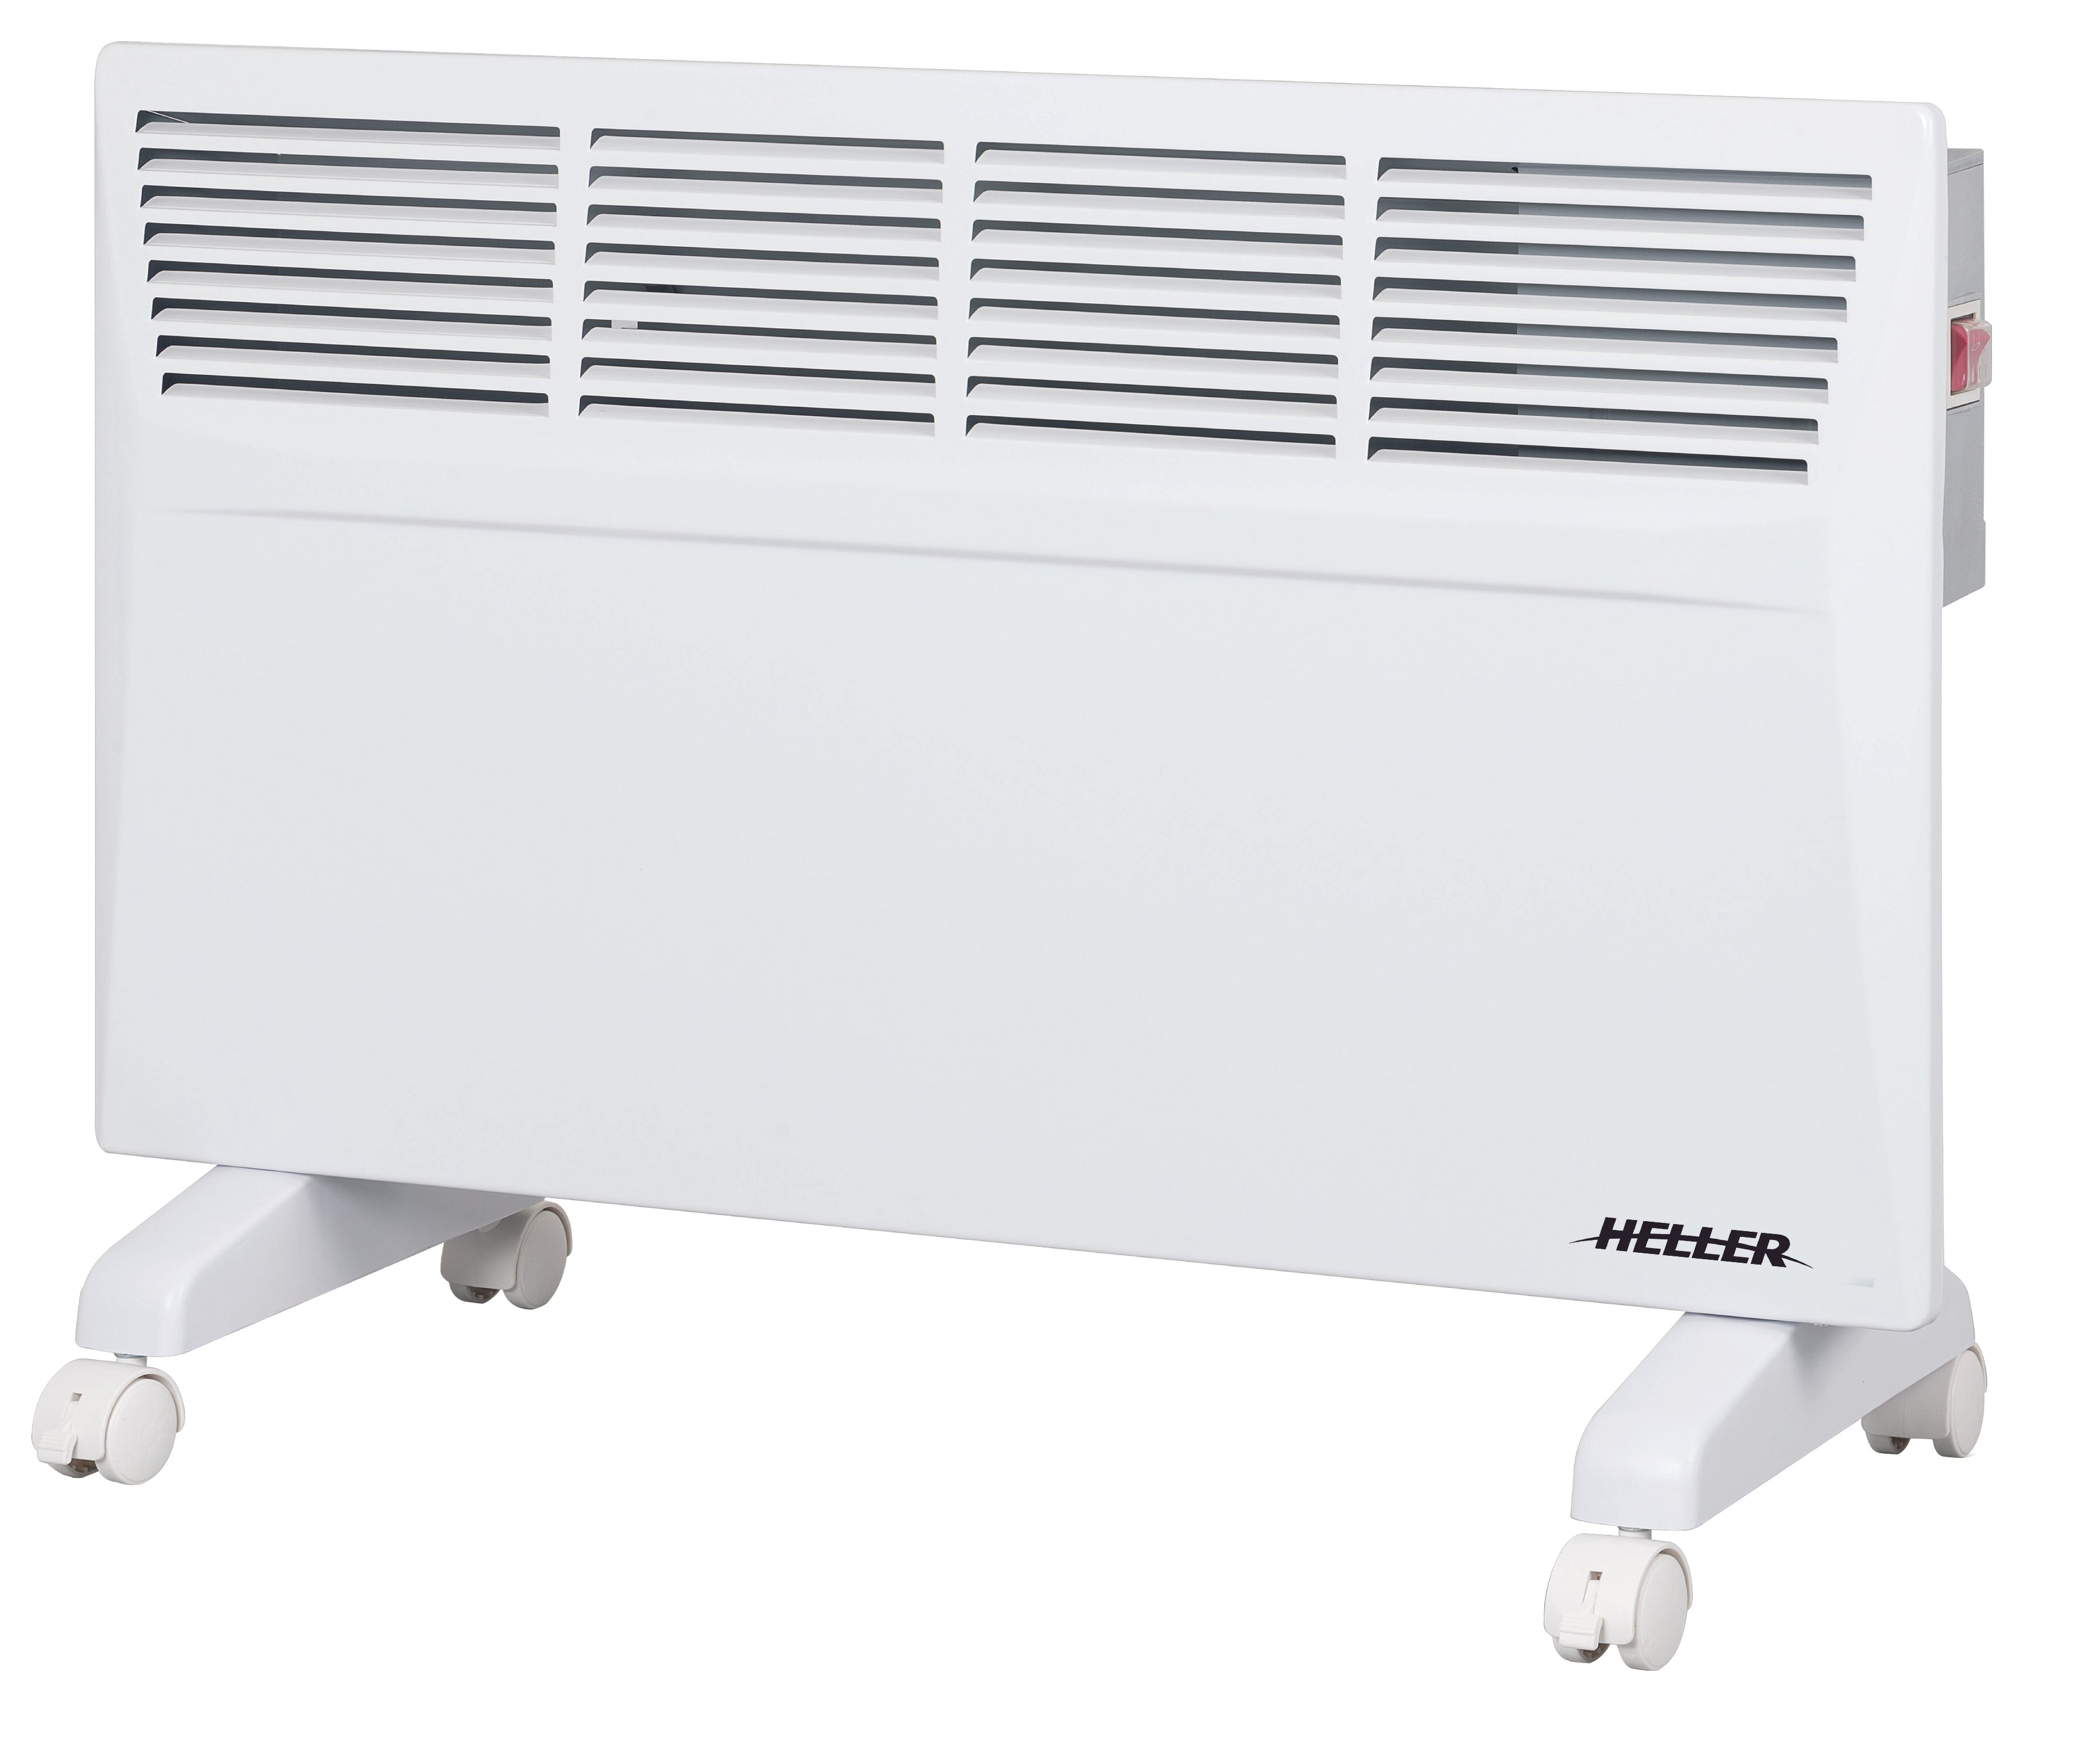 Panel Convection Heater